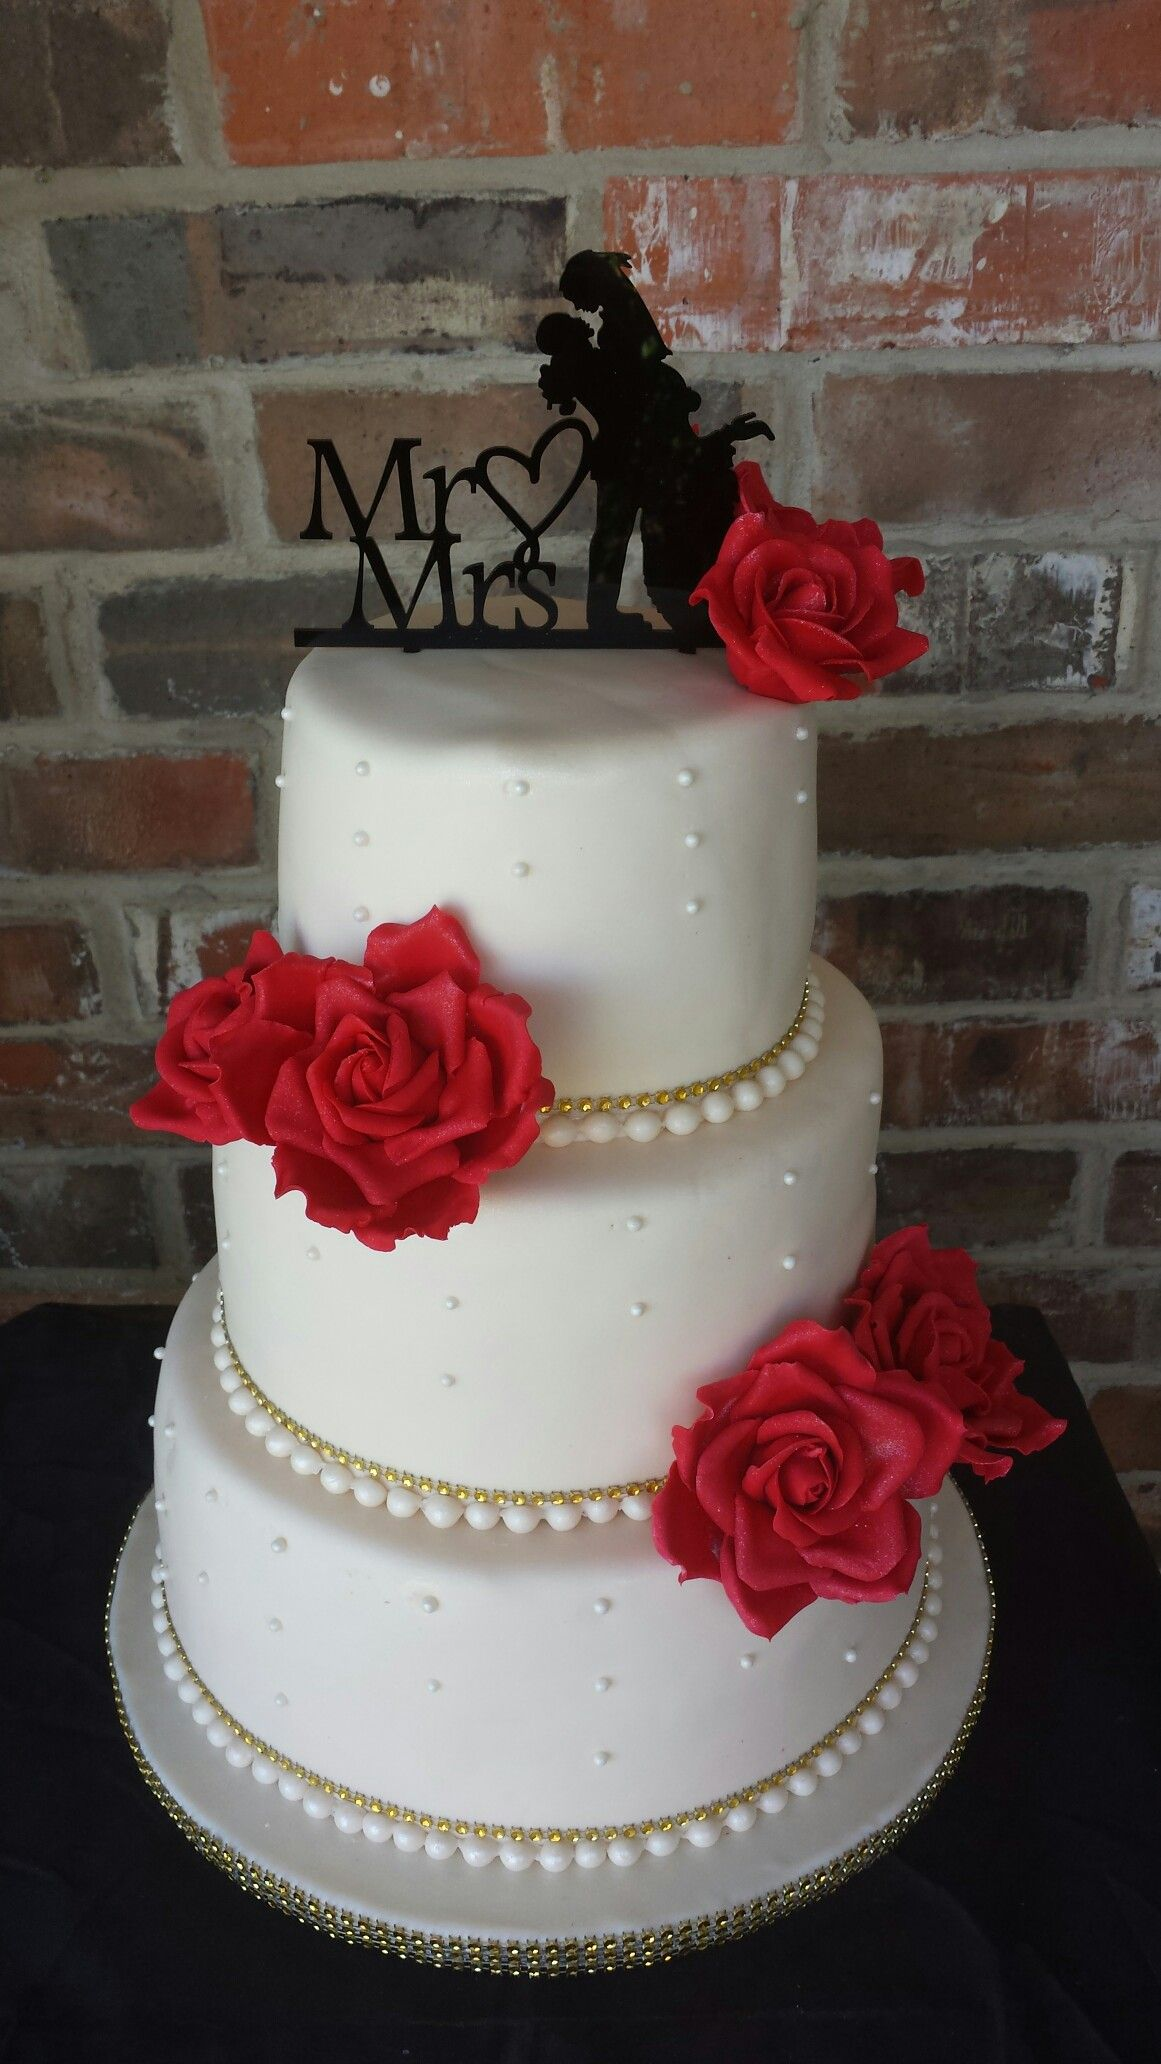 Edible red roses wedding cake by max amor cakes max amor cakes